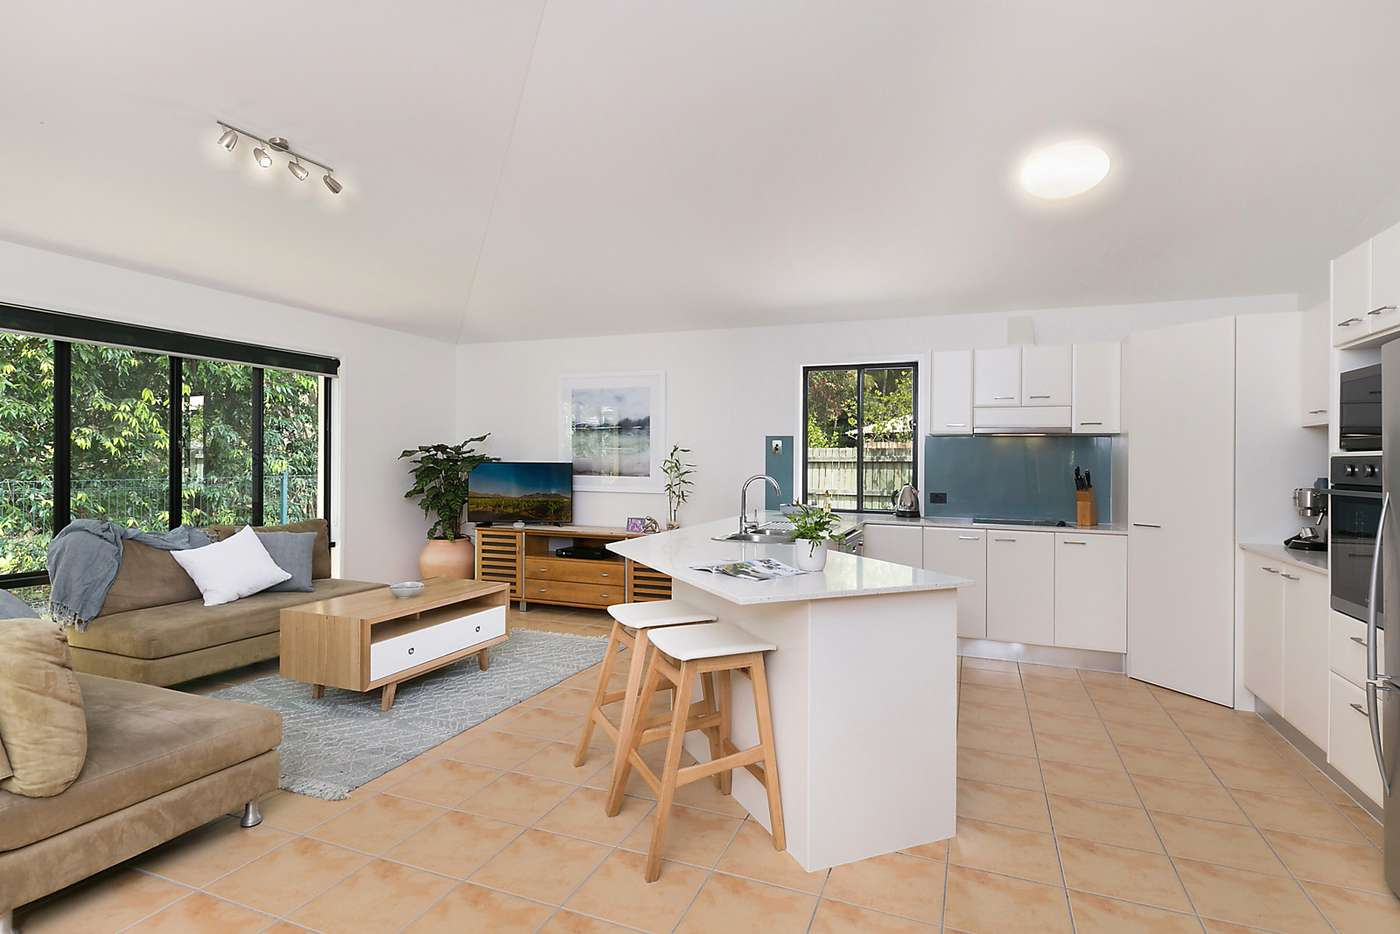 Sixth view of Homely house listing, 28 Rainsford Place, Buderim QLD 4556